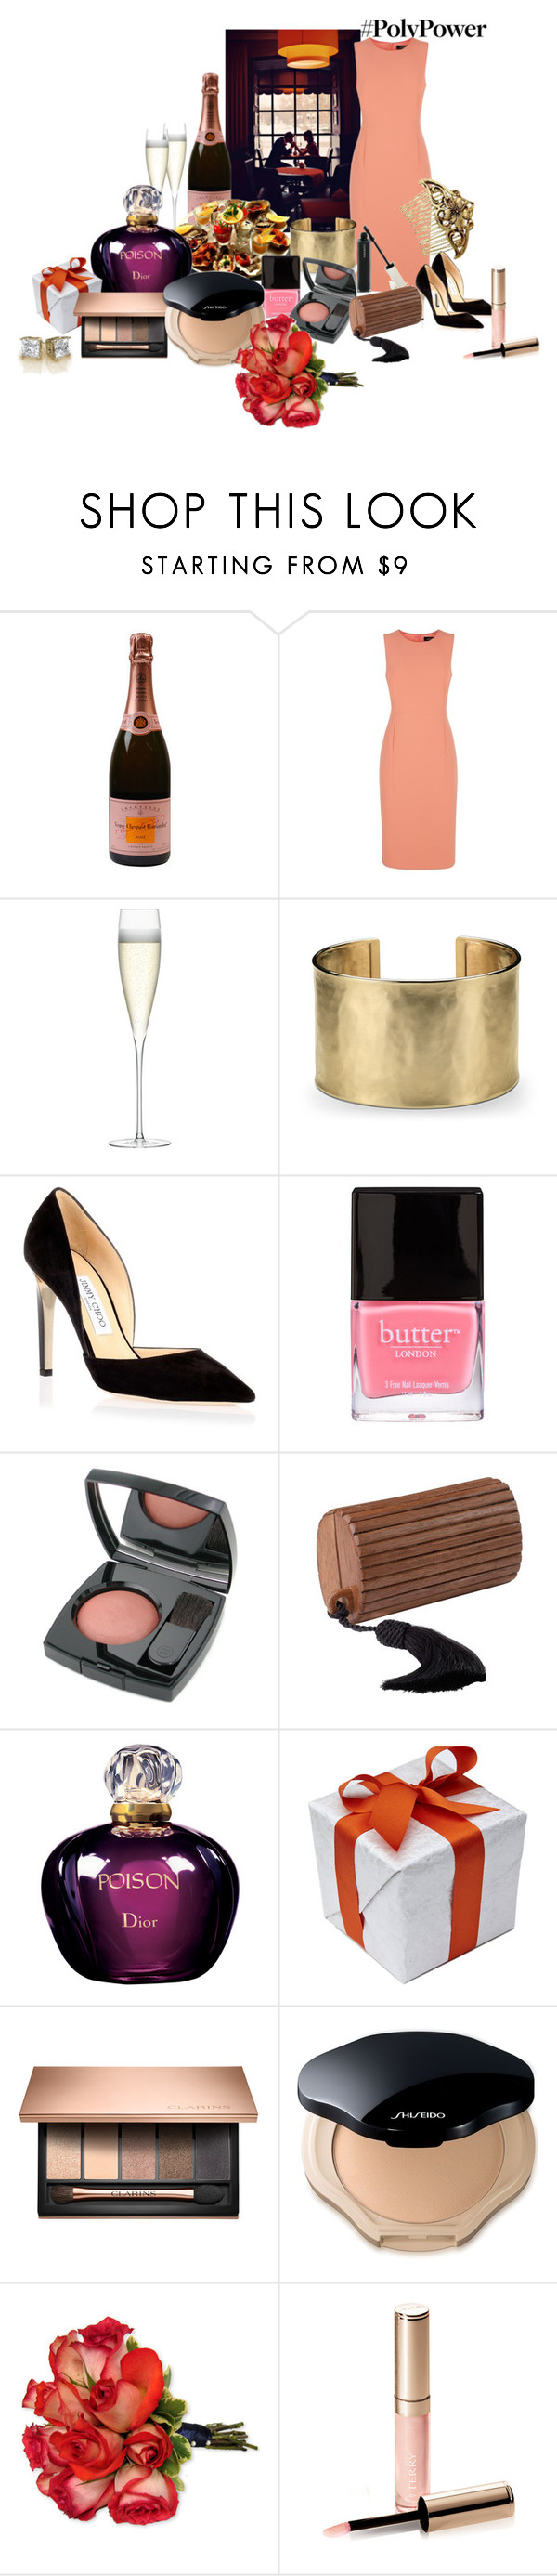 """Power!"" by lellablue ❤ liked on Polyvore featuring Jaeger, LSA International, Blue Nile, Jimmy Choo, Butter London, Chanel, Nina Ricci, Christian Dior, Shiseido and By Terry"